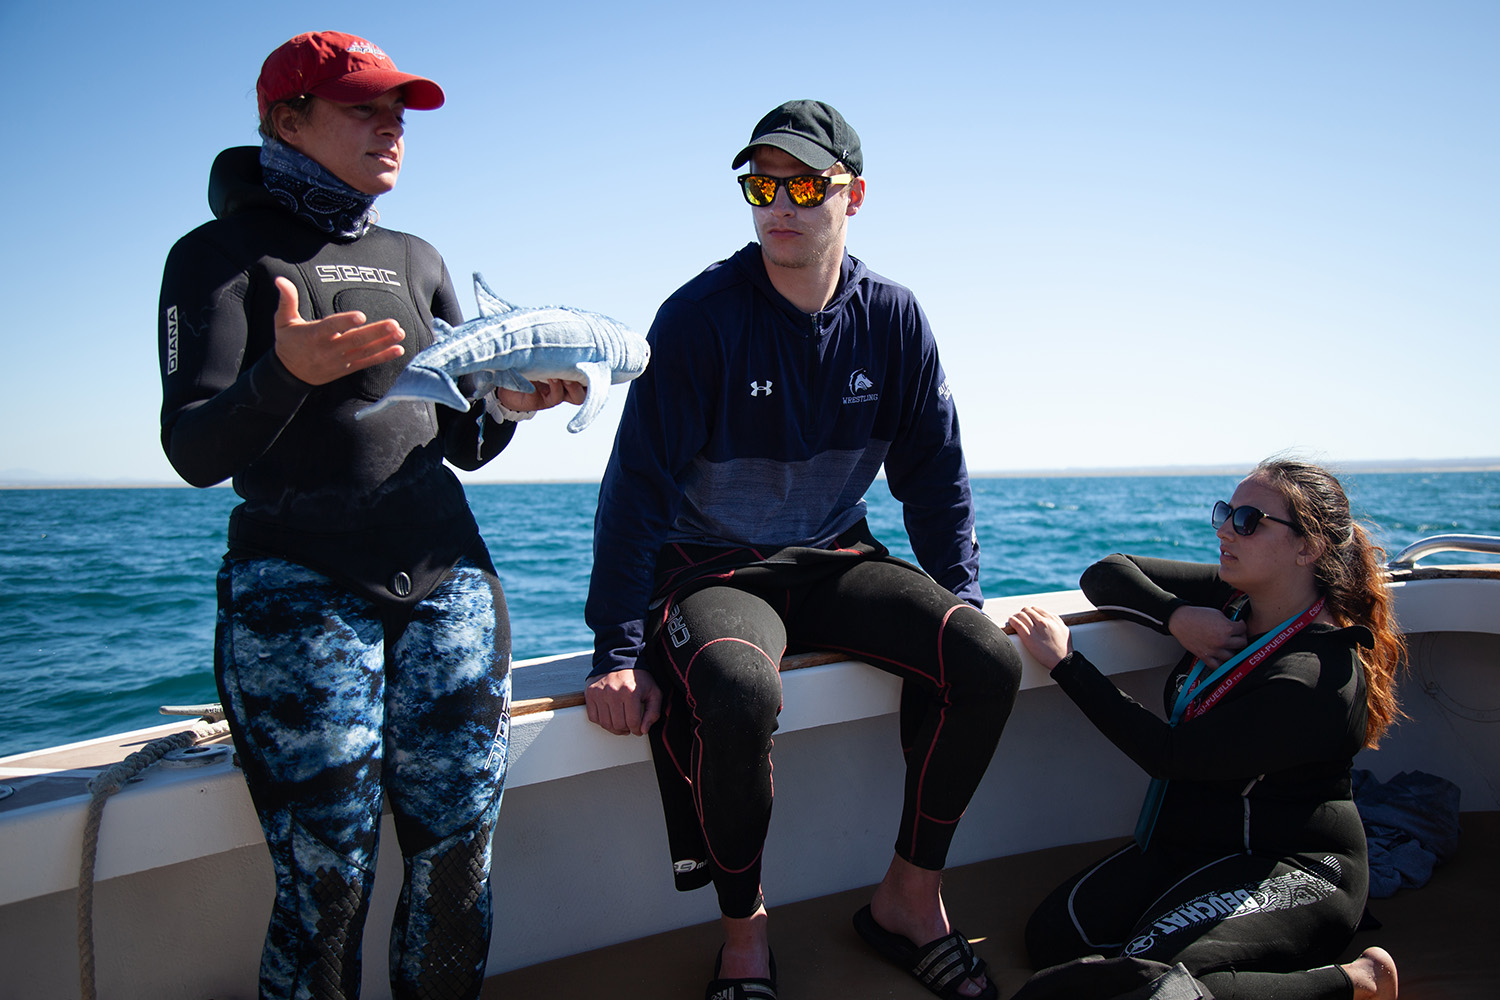 Dive instructor Crissy Cappellano describes the whale shark to A.J. Cross and Lilyana Lahti